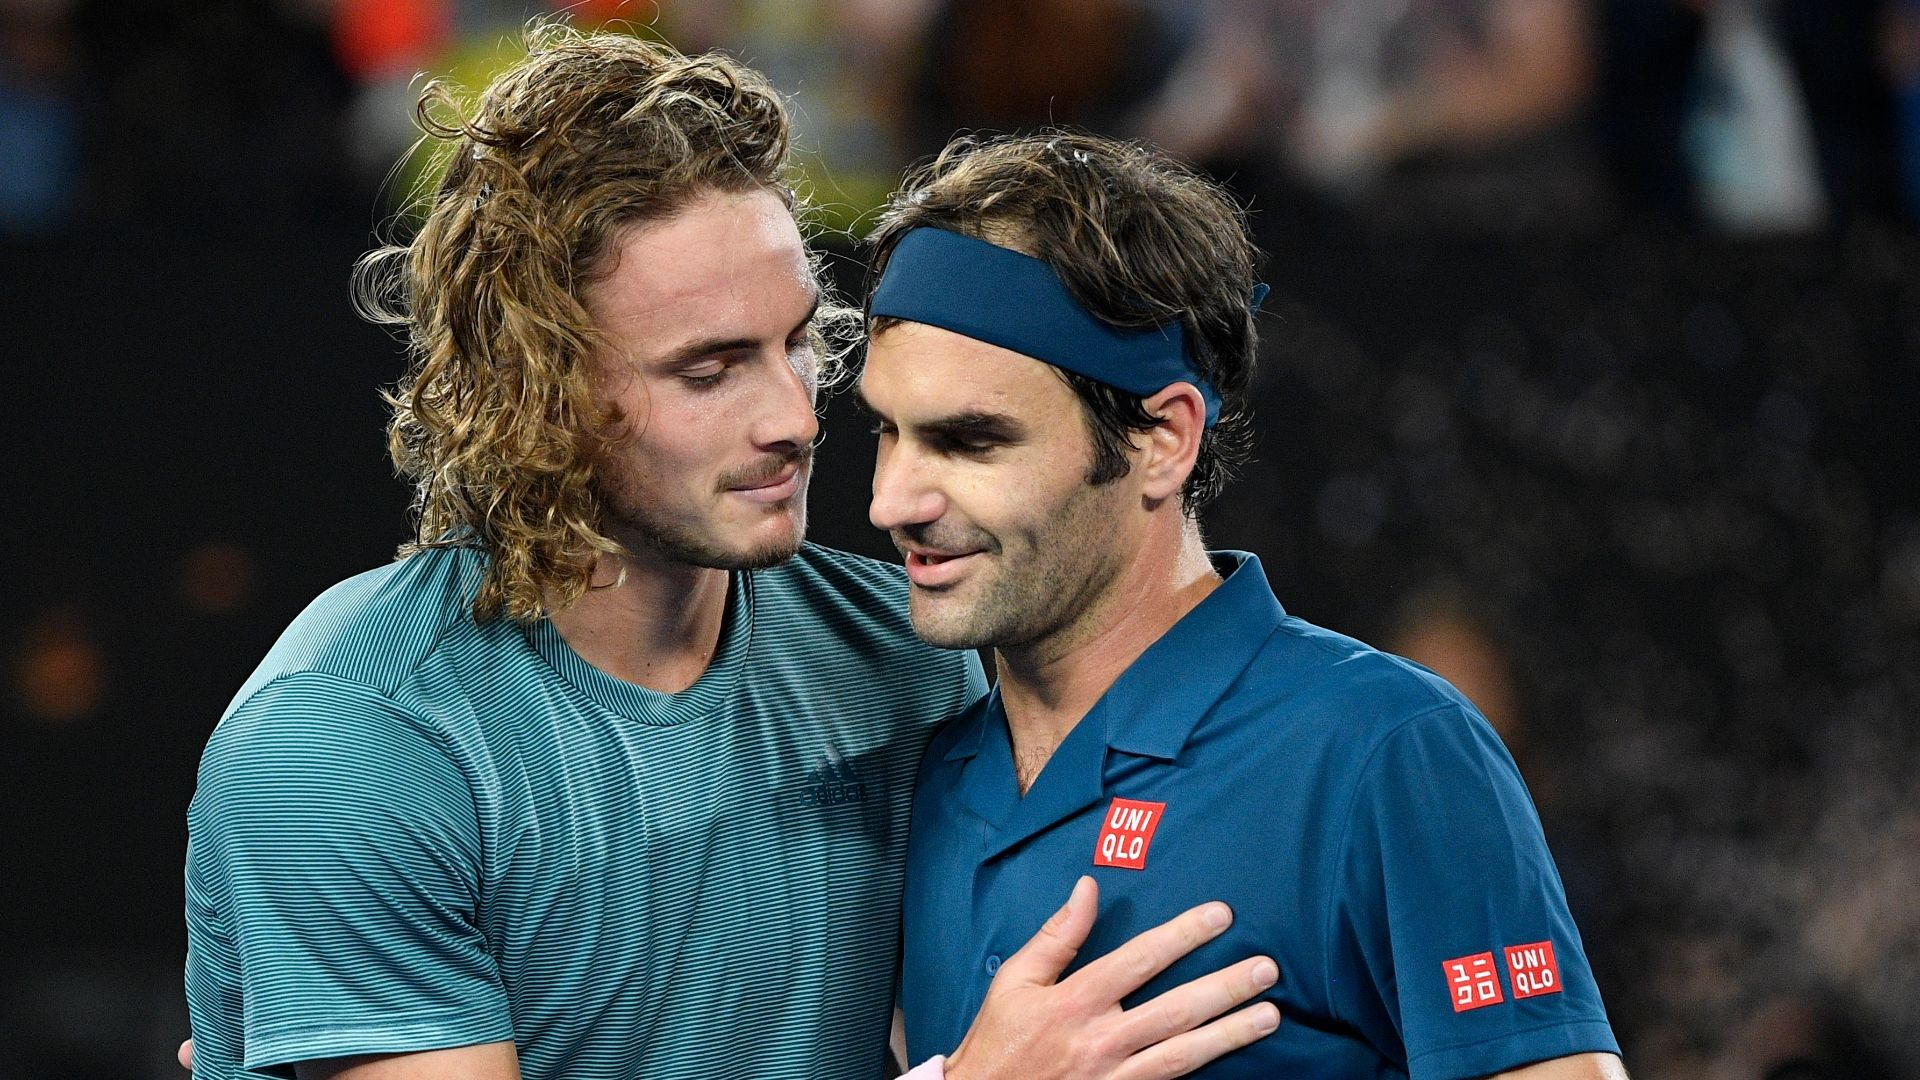 Federer upset by Tsitsipas at Australian Open